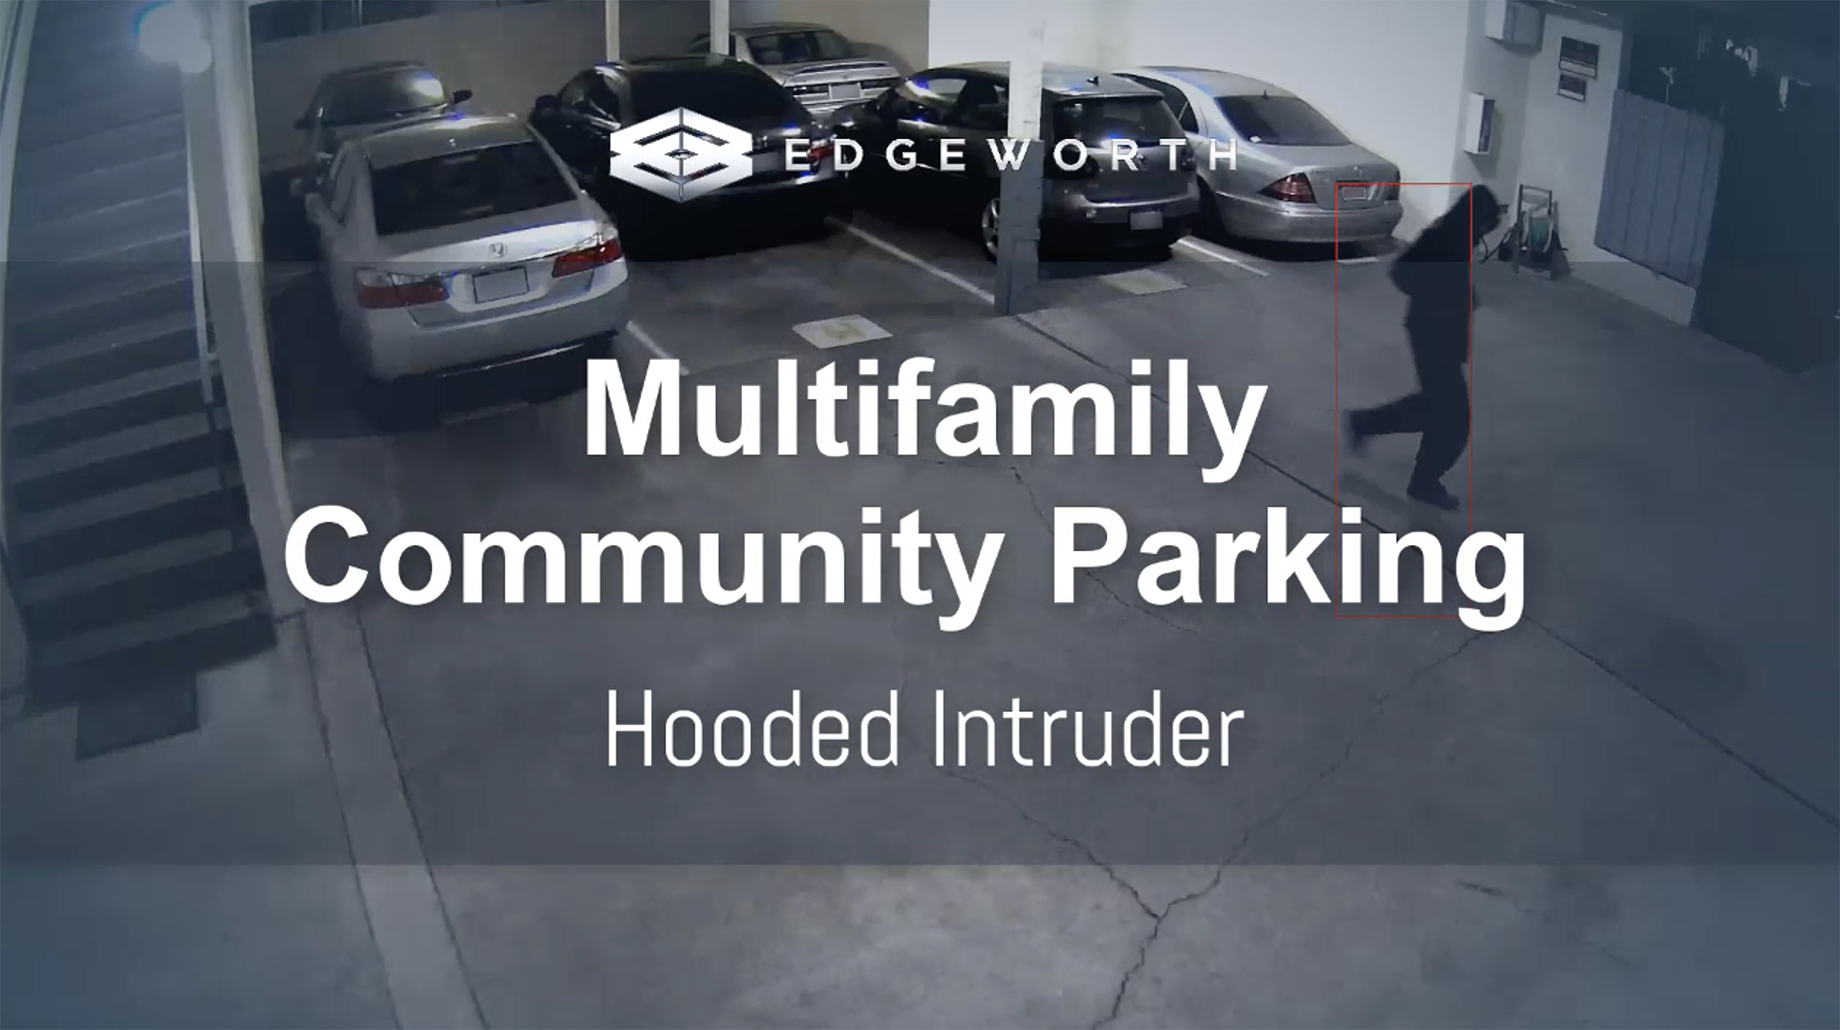 Edgeworth's Voice Down Warnings Deter Crime in Community Parking Garages